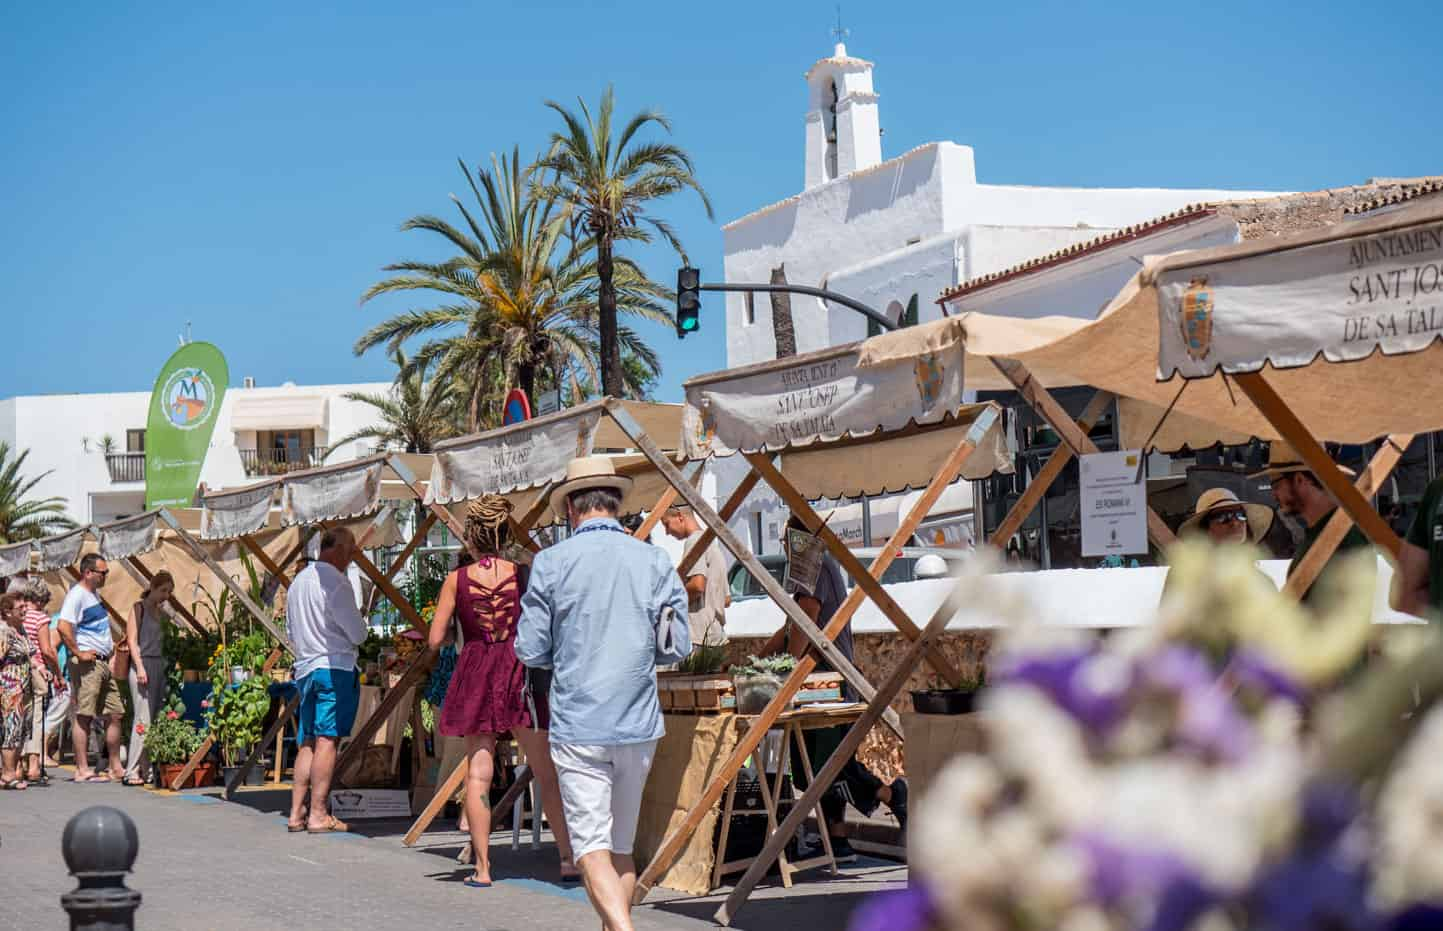 mercat-sant-jose-Eivissa-welcometoibiza5